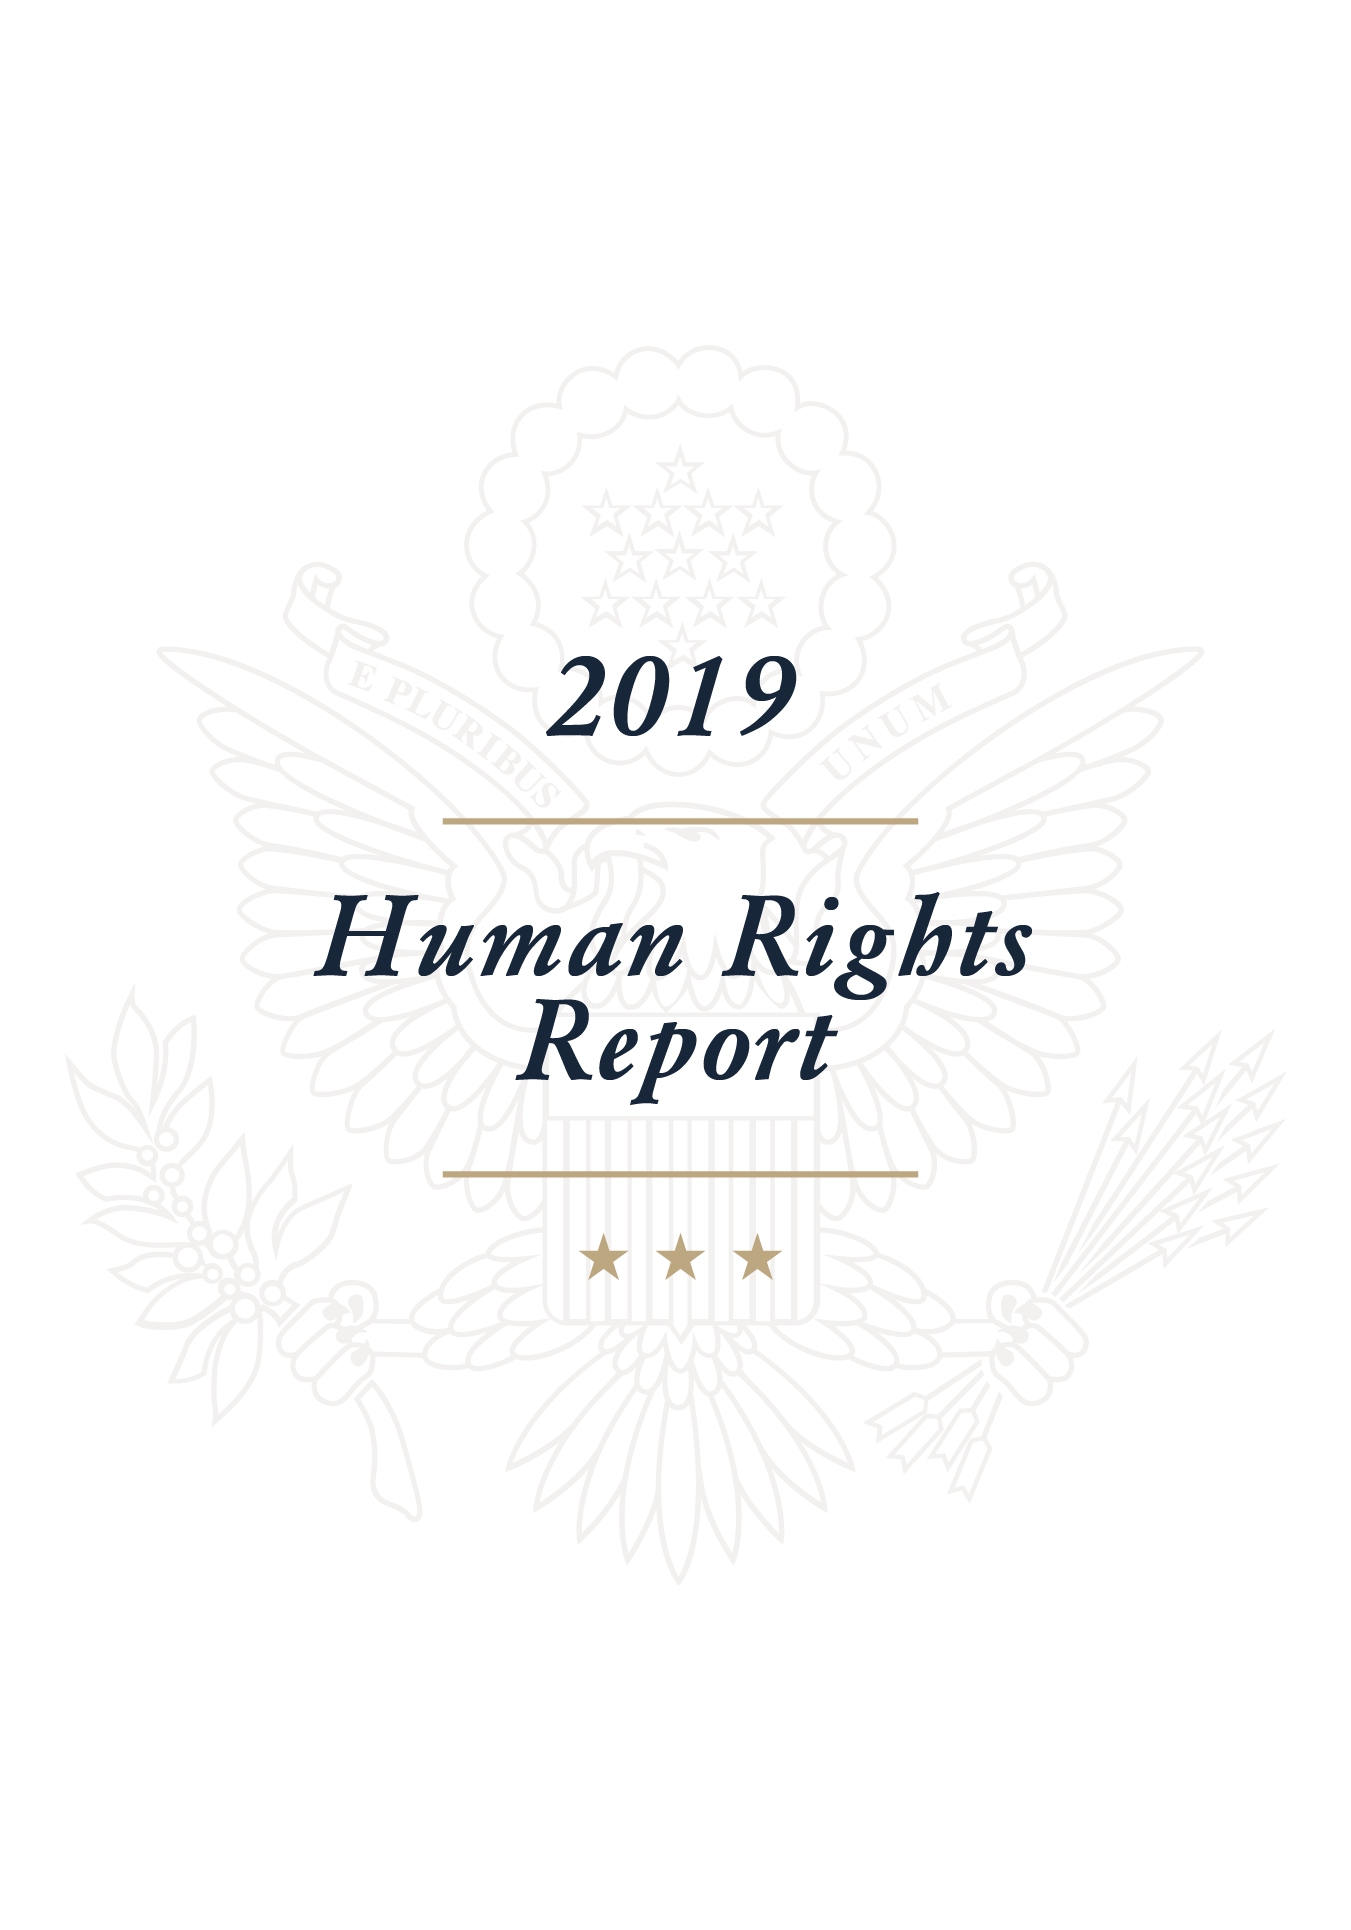 2019 Human Rights Report